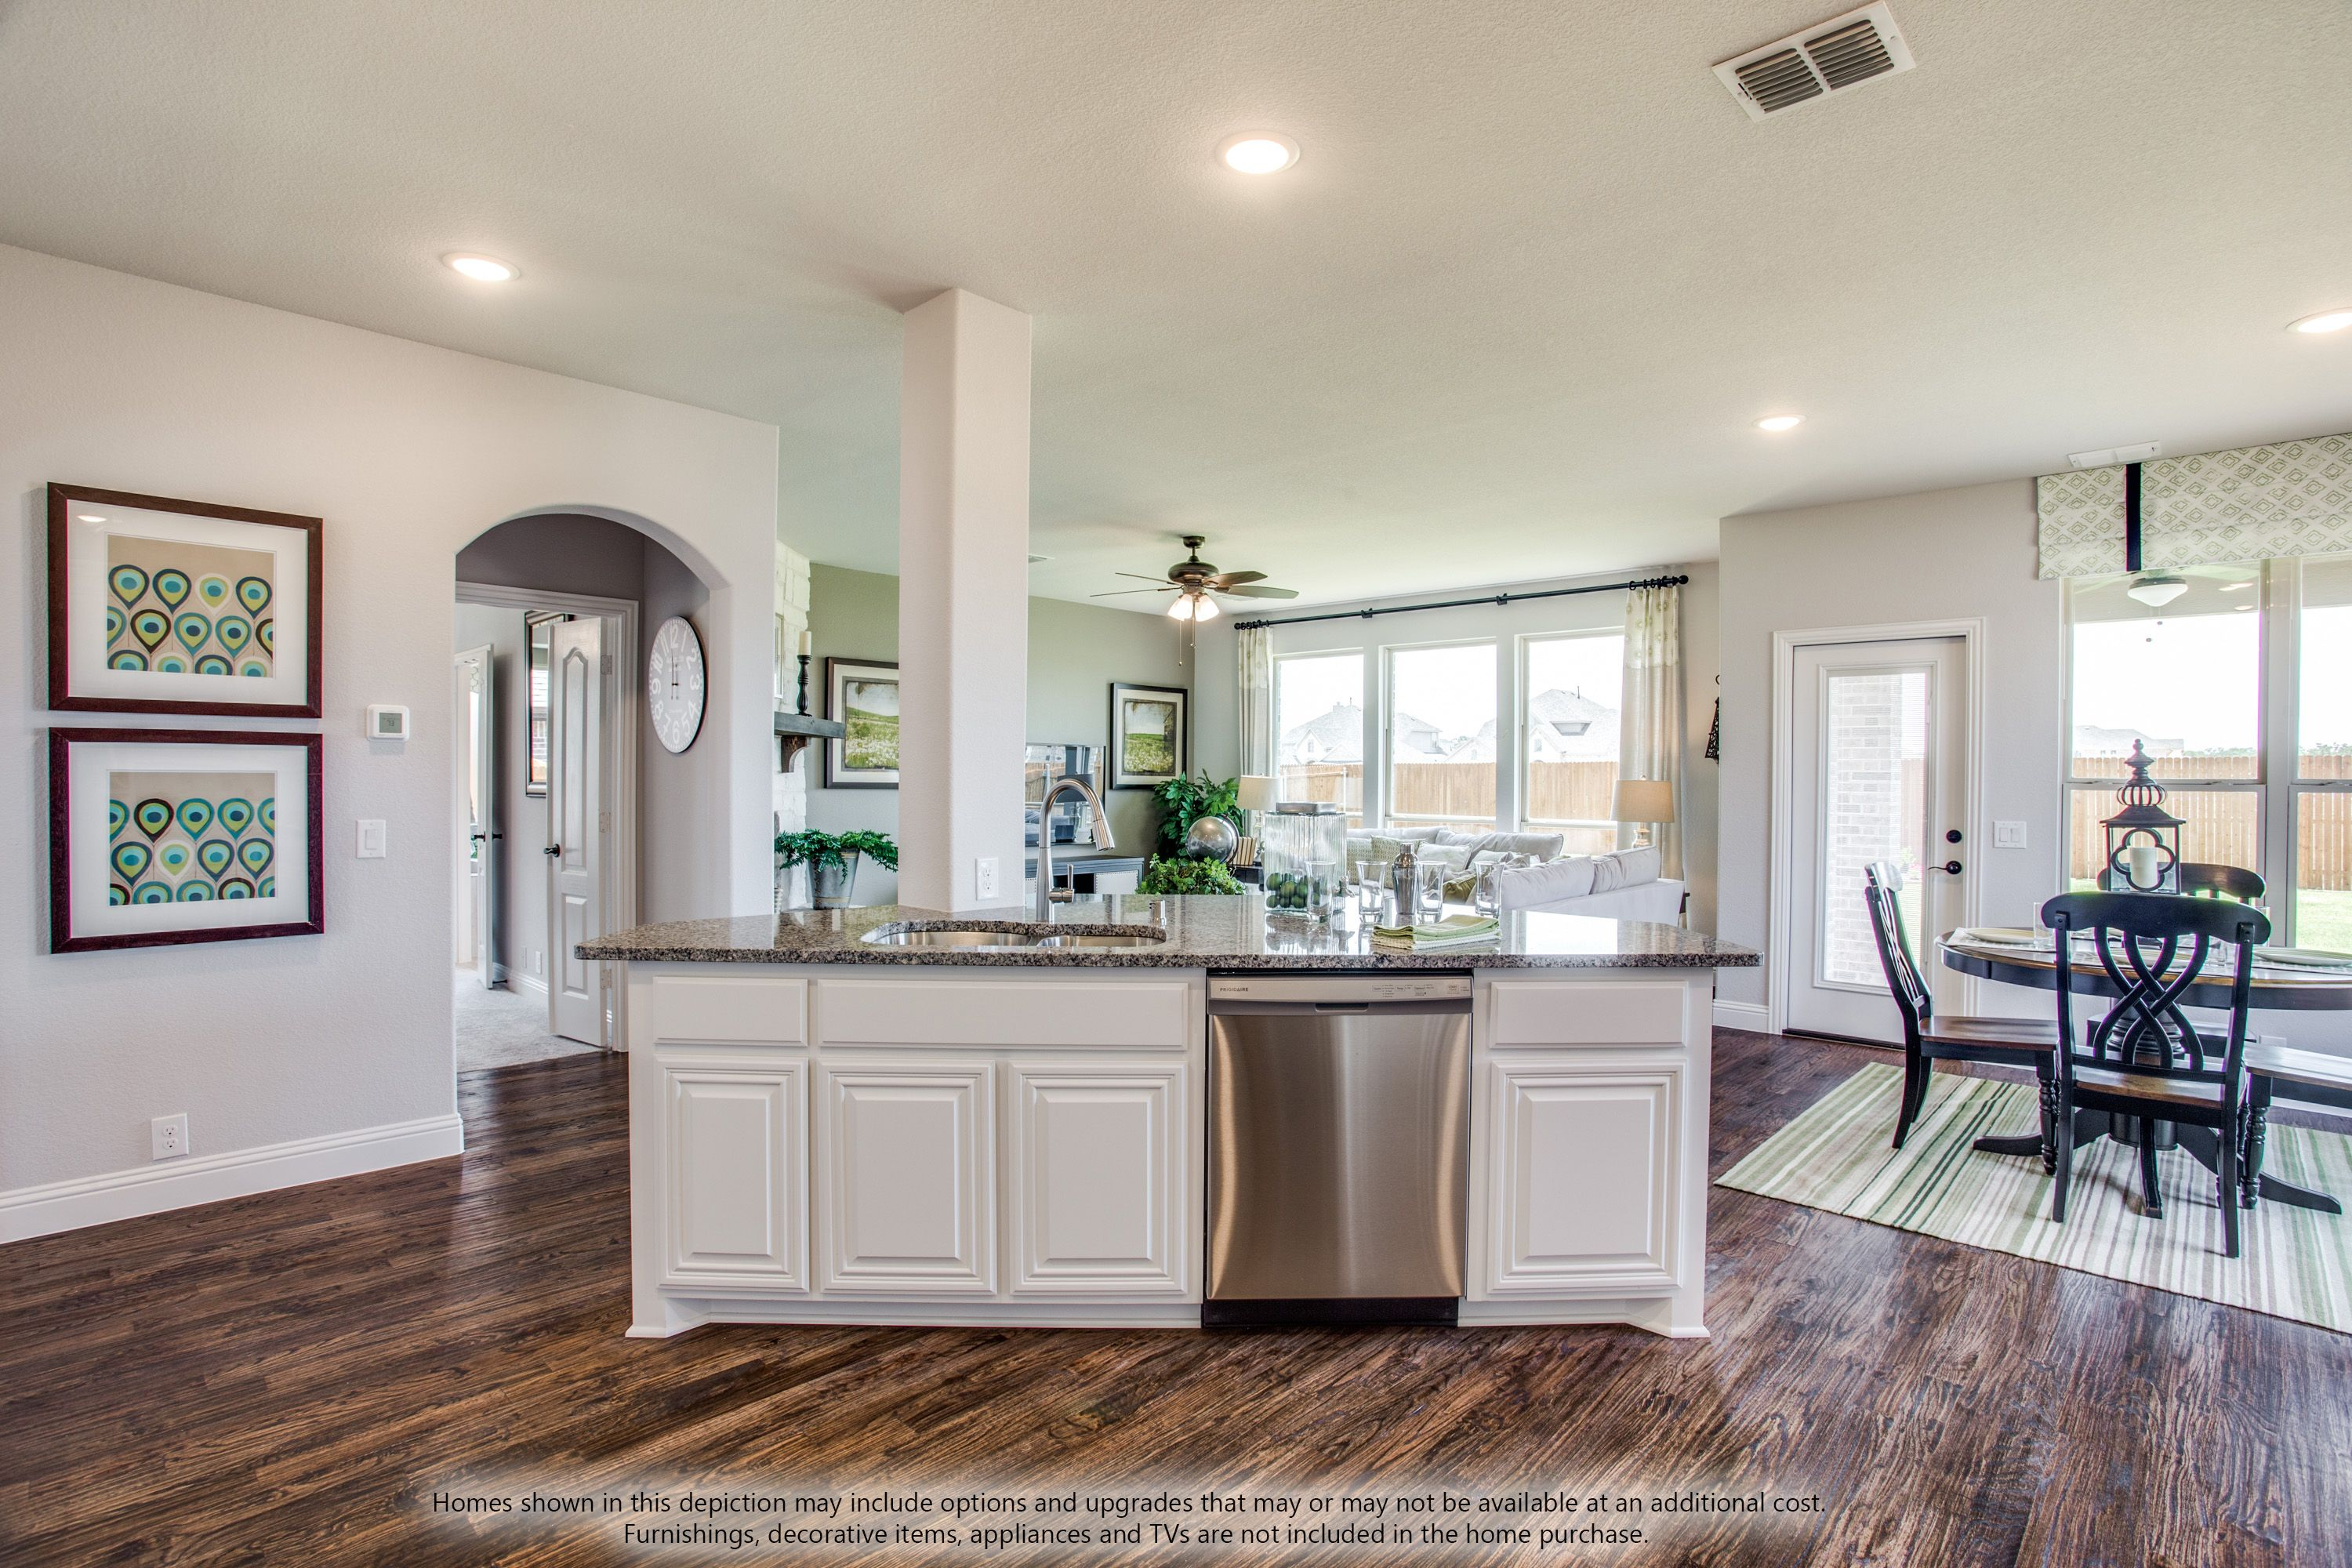 Kitchen featured in the Dewberry II Side Entry By Bloomfield Homes in Dallas, TX